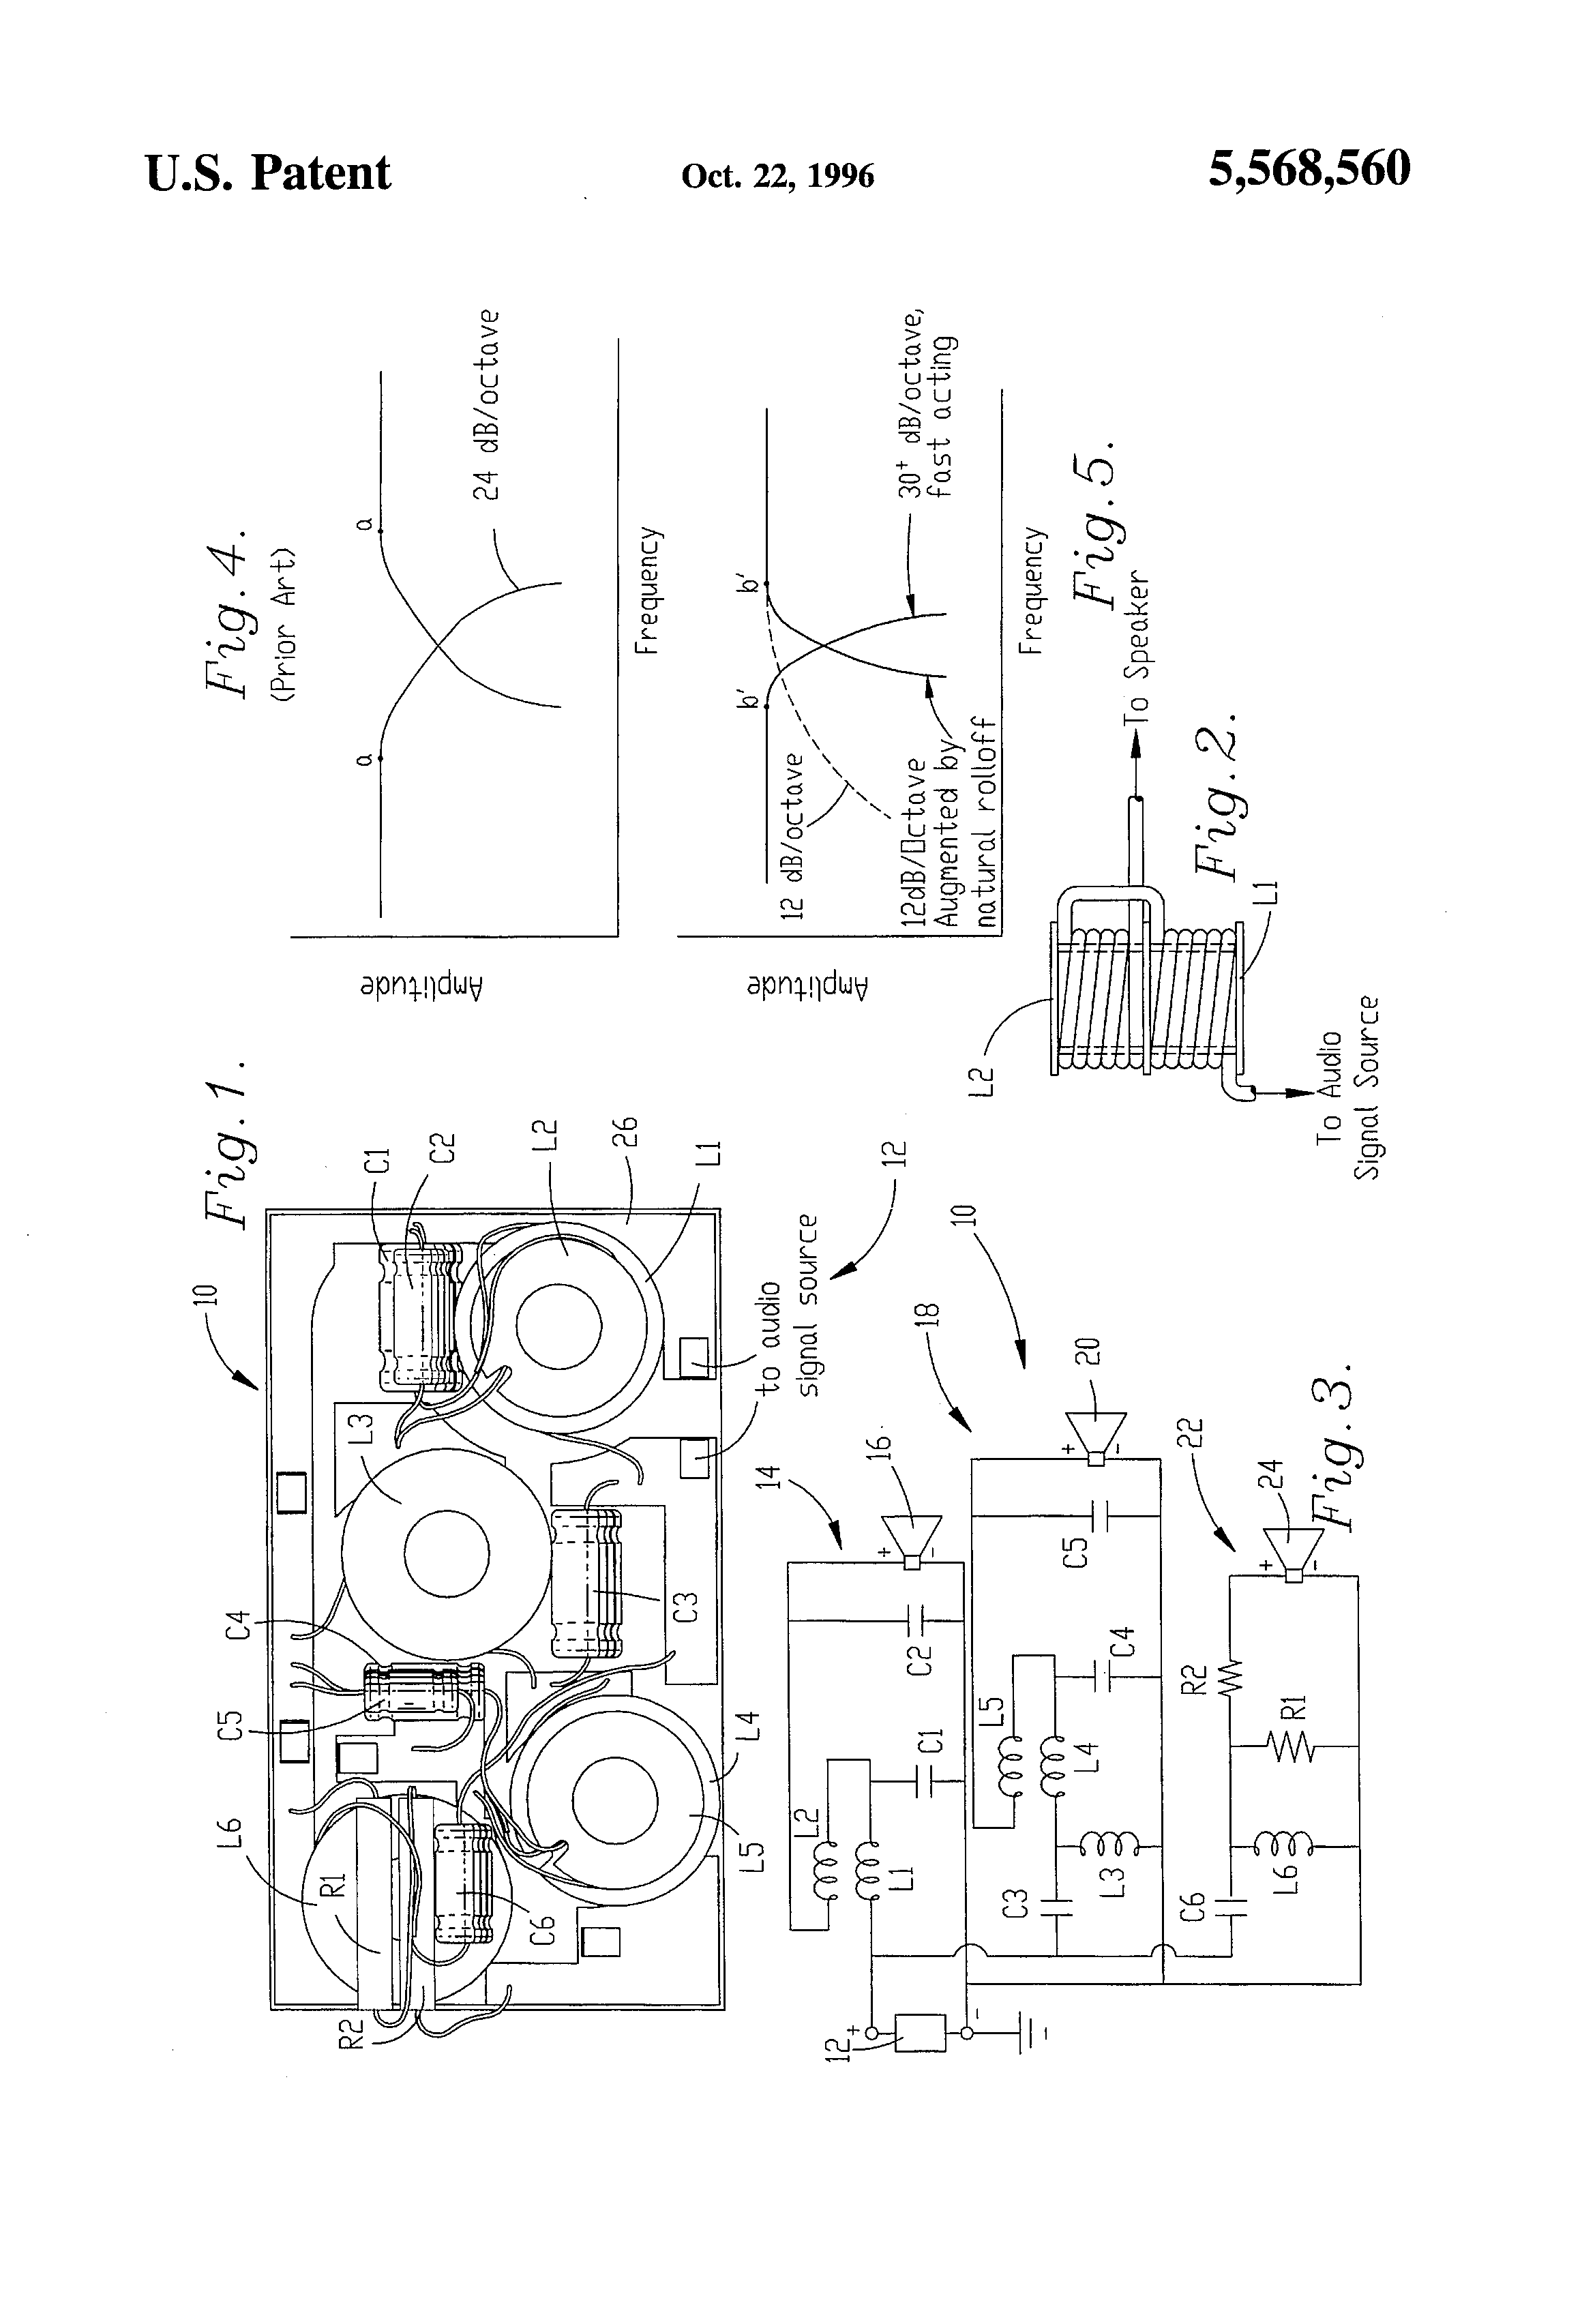 Patent US5568560 - Audio crossover circuit - Google Patents on altitude diagram, amplifier diagram, subwoofer crossover diagram, crossover cable diagram, crossover circuit diagram, crossover steering diagram, cat5 cable diagram, t1 cable pinout diagram, speakers diagram, battery diagram, crossover connection diagram,